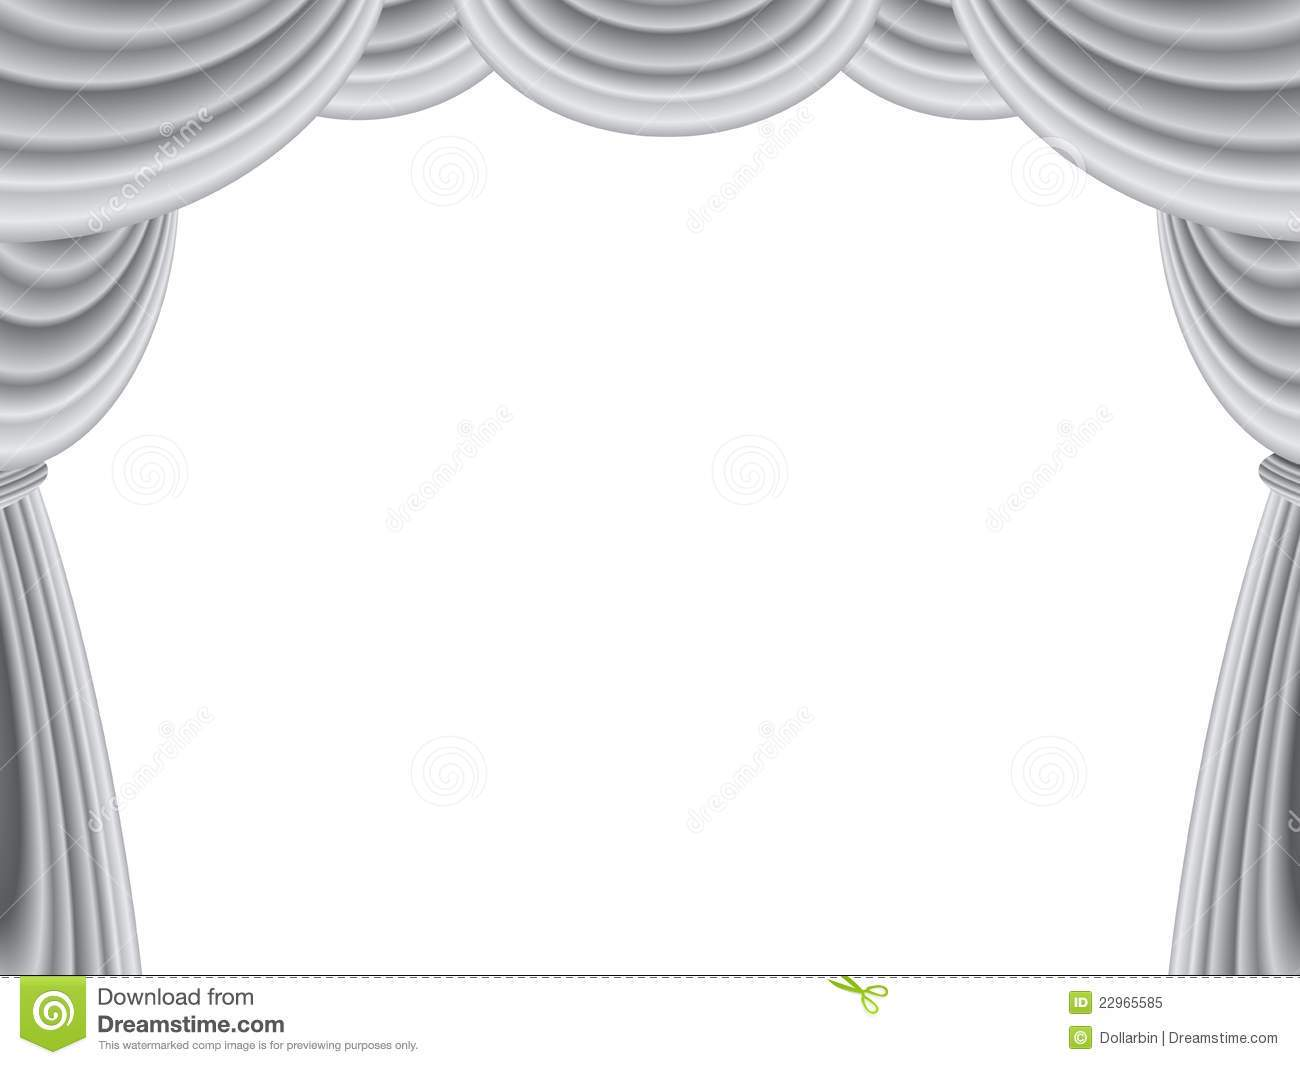 Black and white stage clipart picture black and white Stage curtains clipart black and white 2 » Clipart Portal picture black and white